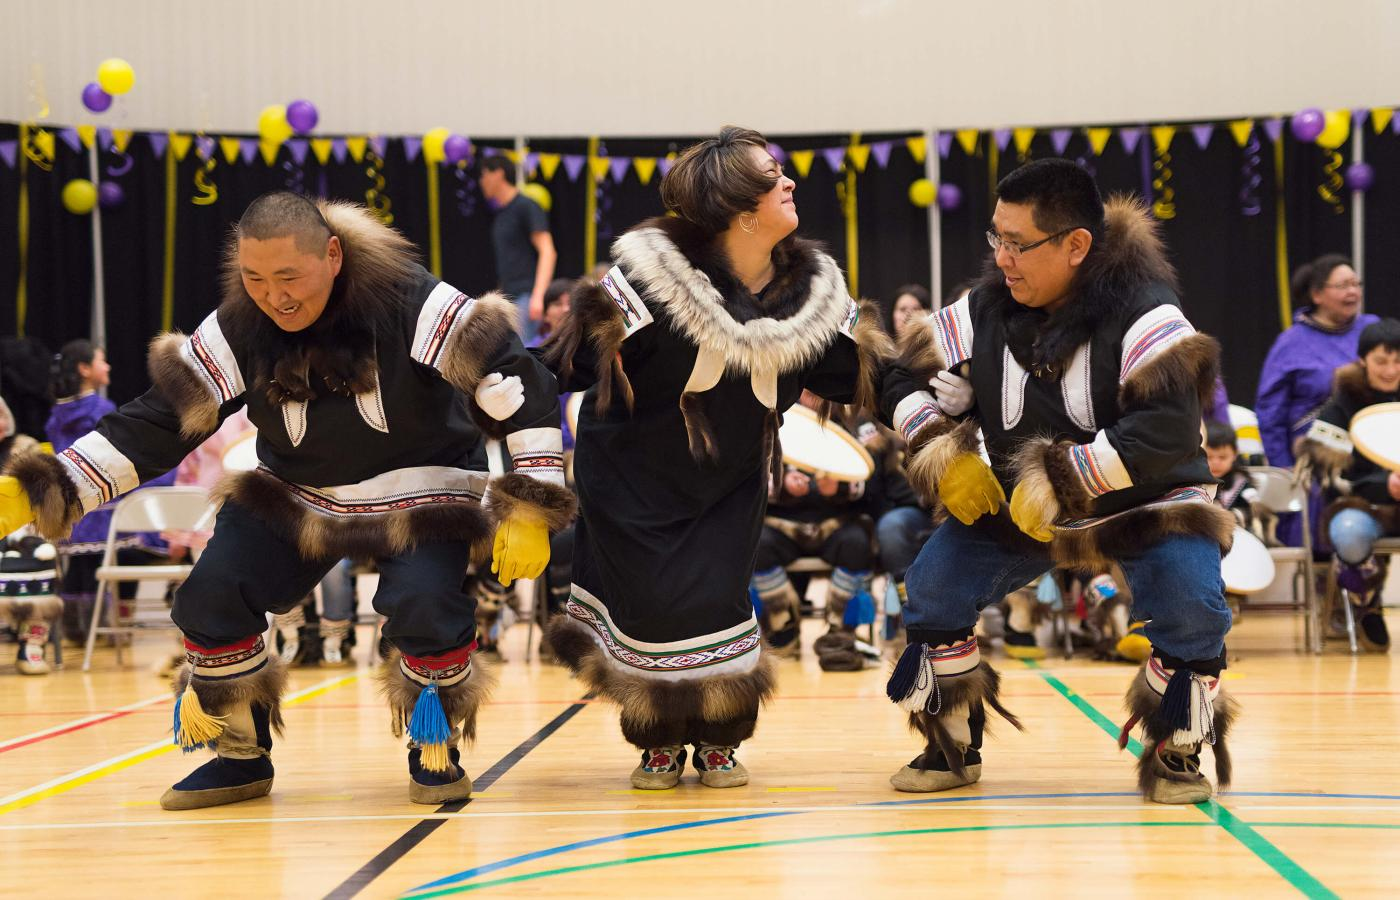 The Muskrat Jamboree in Inuvik, Northwest Territories